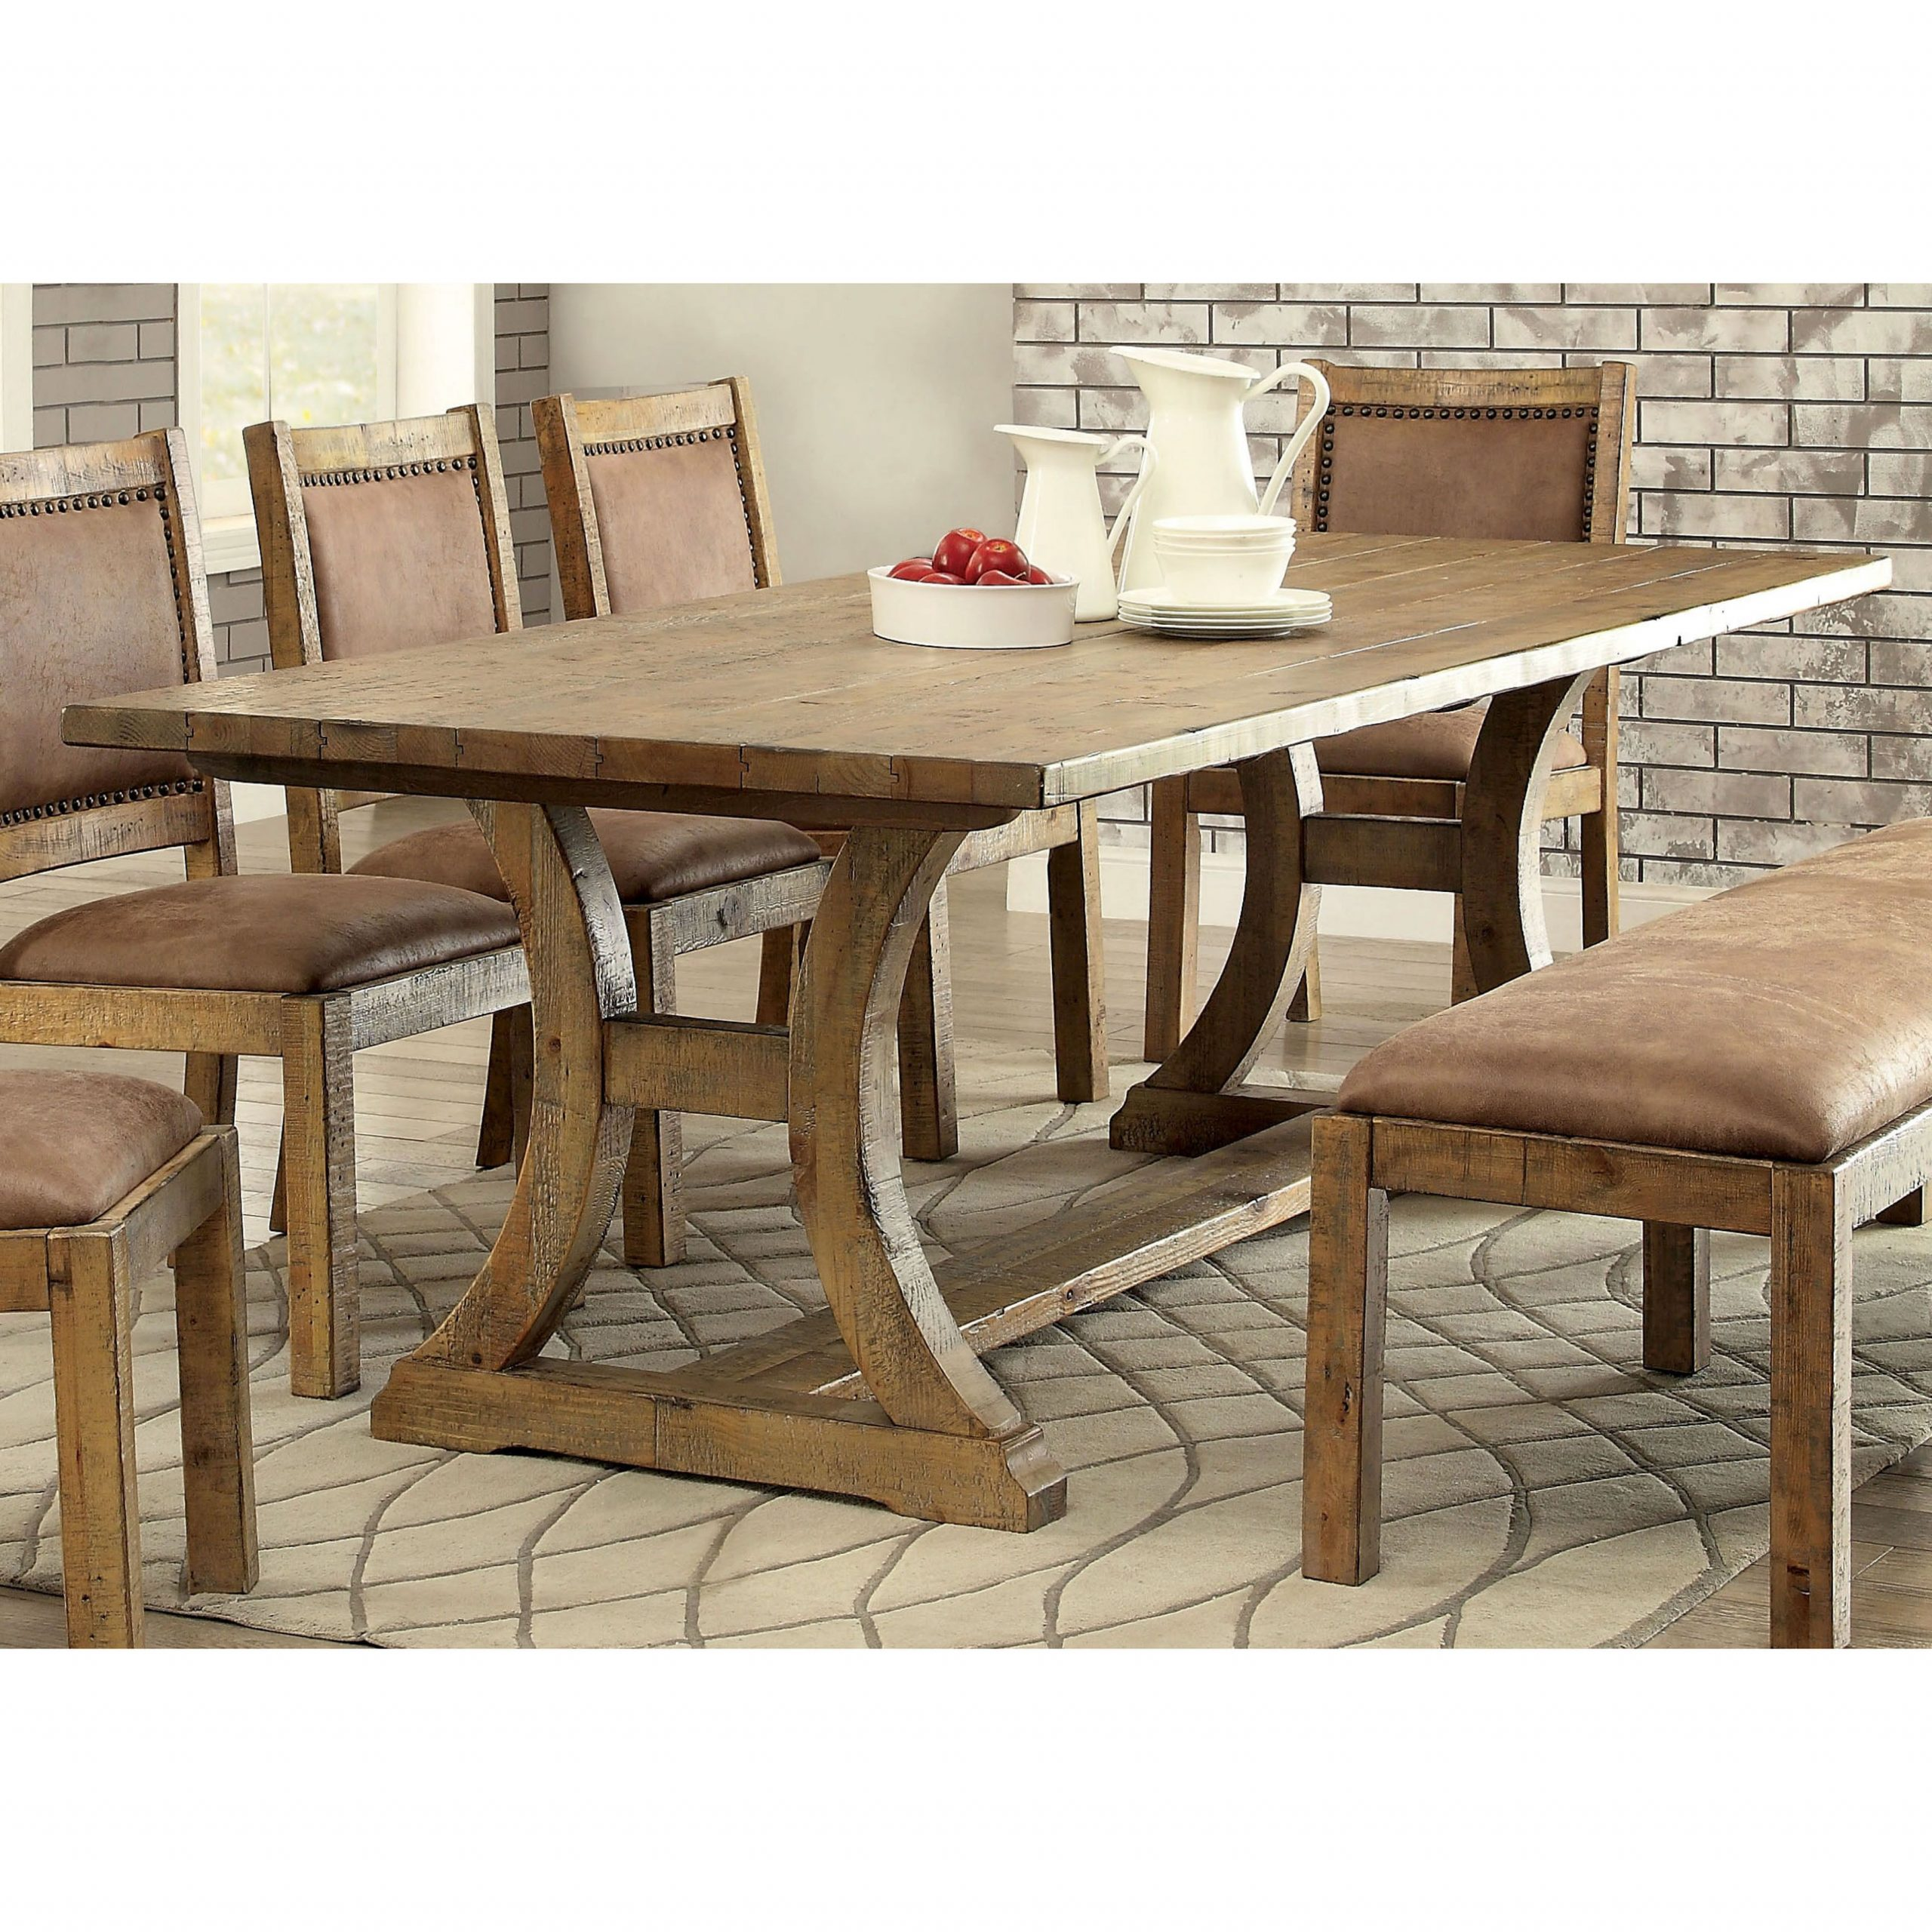 Most Current Small Dining Tables With Rustic Pine Ash Brown Finish Regarding Furniture Of America Matthias Industrial Rustic Pine Dining (View 3 of 25)